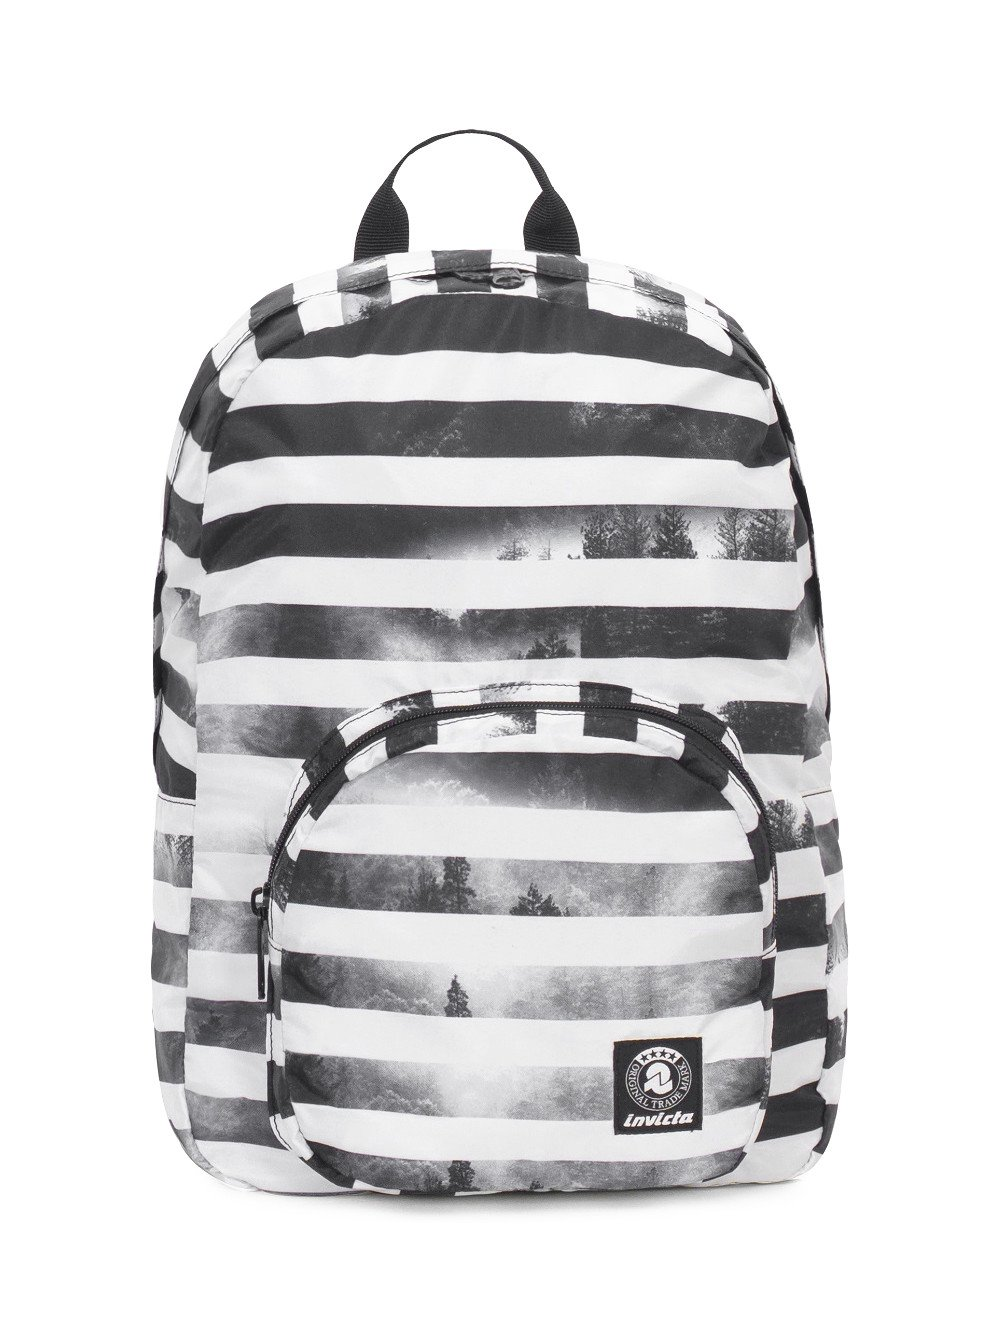 Zaino Invicta 20 litri Packable Smart 206001813-FO7 zaino viaggi tempo libero ripiegabile black striped forest lema